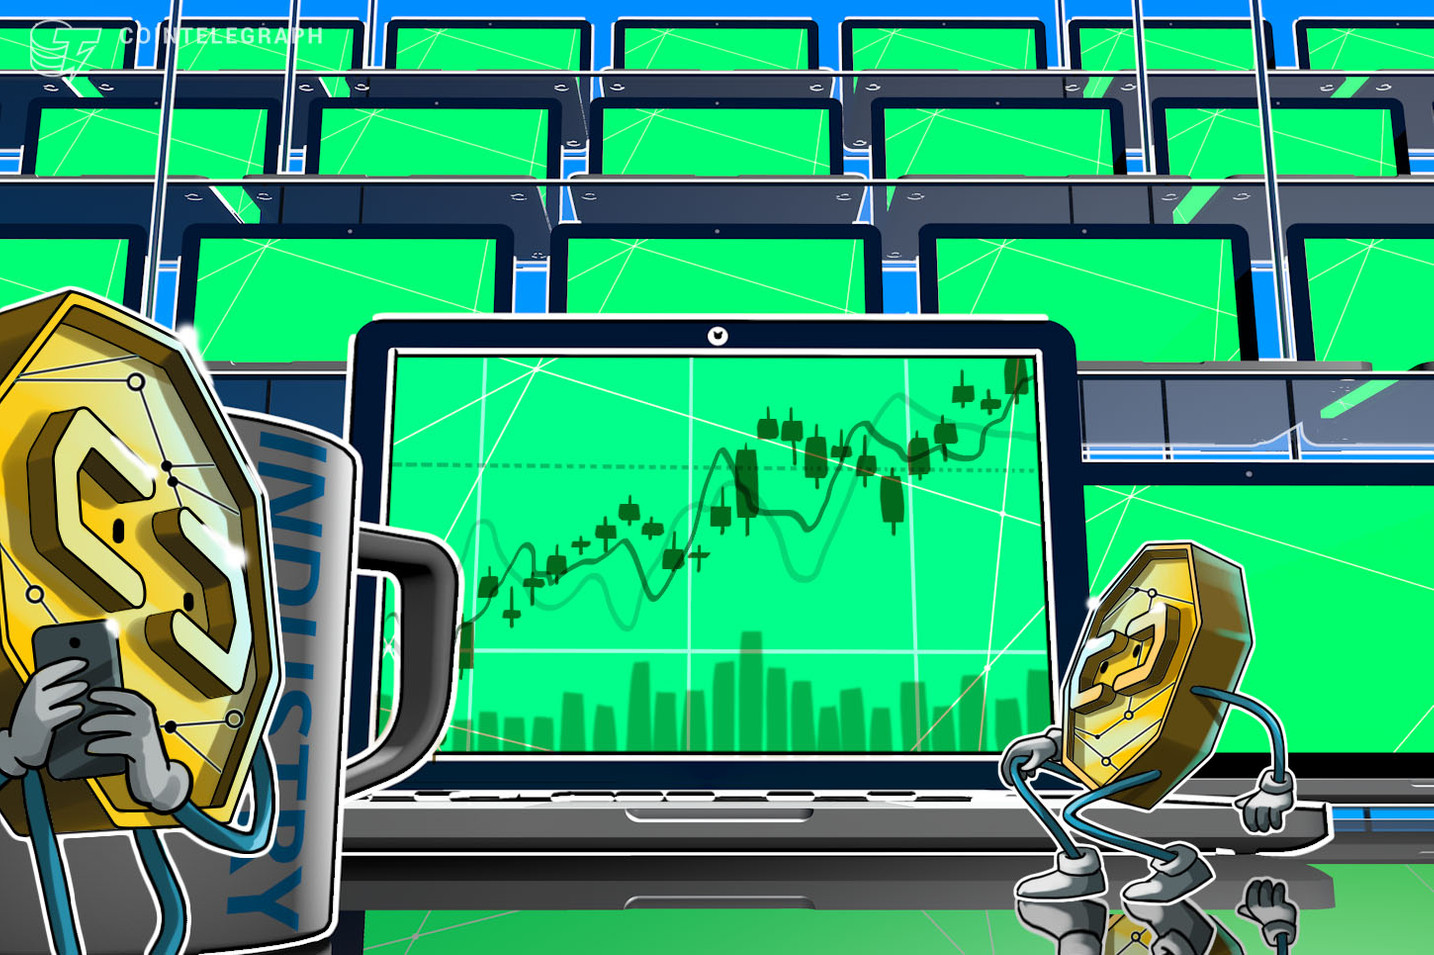 Bitcoin Hovers Near $7K, as Wider Market Tips Back Into the Green